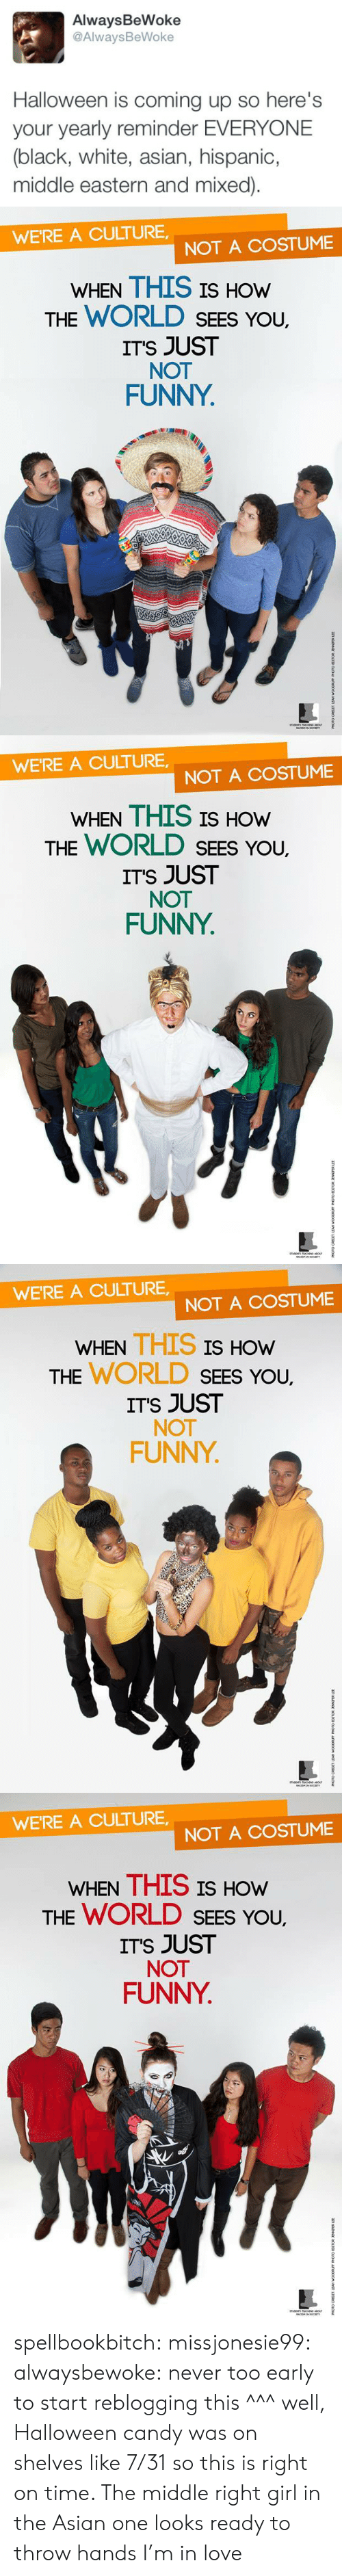 hispanic: AlwaysBeWoke  @AlwaysBeWoke  Halloween is coming up so here's  your yearly reminder EVERYONE  (black, white, asian, hispanic,  middle eastern and mixed)   WE'RE A CULTURE  NOT A COSTUME  WHEN THIS IS HOW  THE WORLD SEES YoU.  ITS JUST  NOT  FUNNY   WE'RE A CULTURE  NOT A COSTUME  WHEN THIS IS HOW  THE WORLD SEES YoU.  ITS JUST  NOT  FUNNY   WE'RE A CULTURE,  NOT A COSTUME  WHEN THIS IS  HOW  THE WORLD SEEs You,  ITS JUST  NOT  FUNNY   WE'RE A CULTURE  NOT A COSTUME  WHEN THIS IS HOw  THE WORLD SEES You,  ITS JUST  NOT  FUNNY spellbookbitch:  missjonesie99:  alwaysbewoke:  never too early to start reblogging this  ^^^ well, Halloween candy was on shelves like 7/31 so this is right on time.    The middle right girl in the Asian one looks ready to throw hands I'm in love